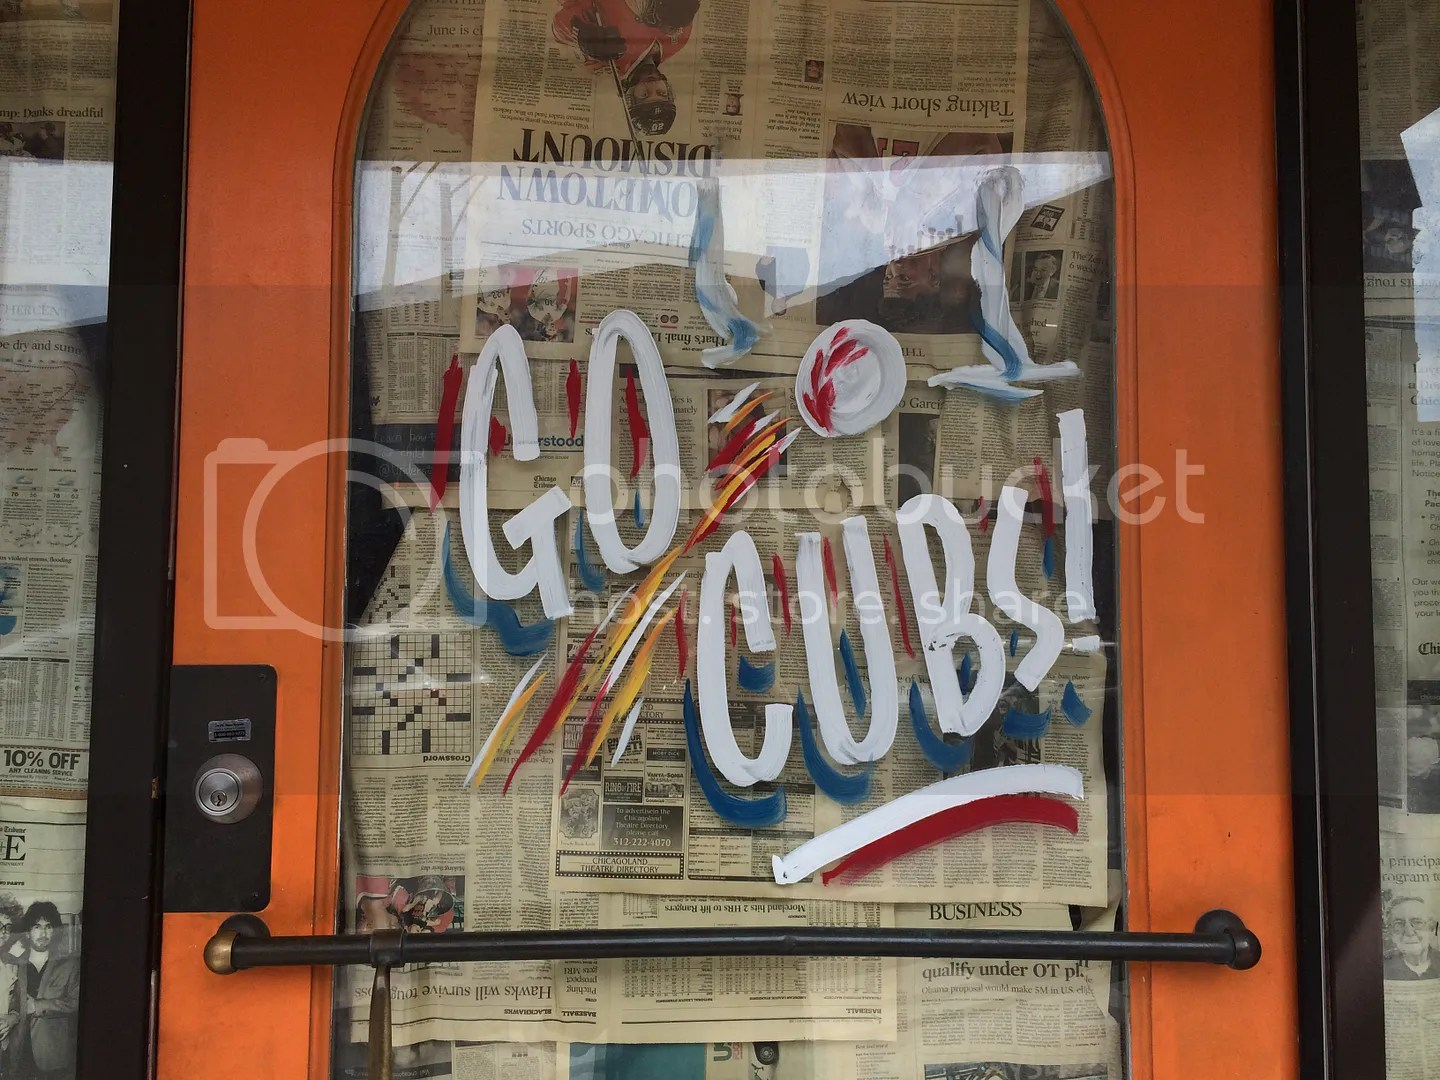 go cubs sign in shop window